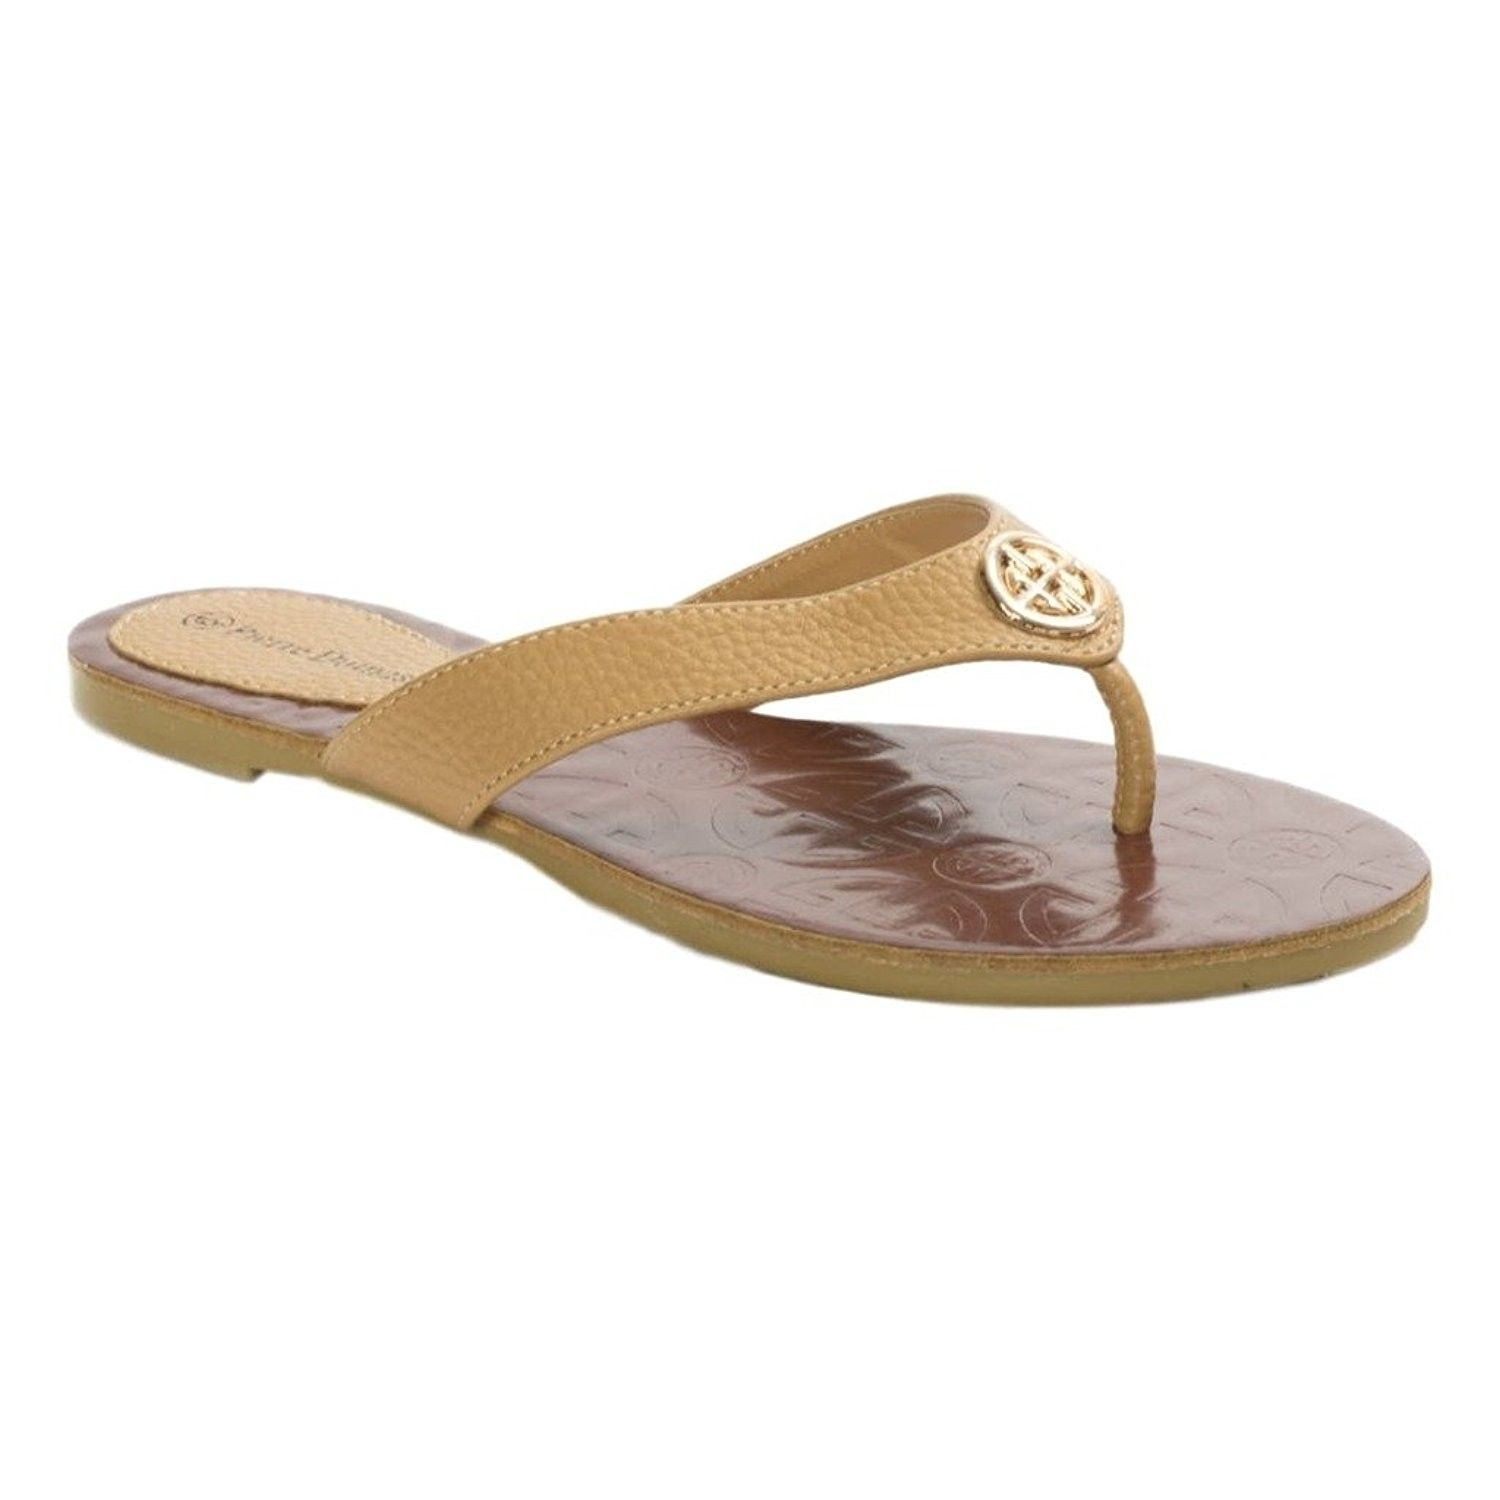 eb5ae2ccf HUI JIN SHOP Women Slides Sandals H Slippers Casual Open Toe Shoe   Very  nice of you to drop by to visit the picture. (This is our…